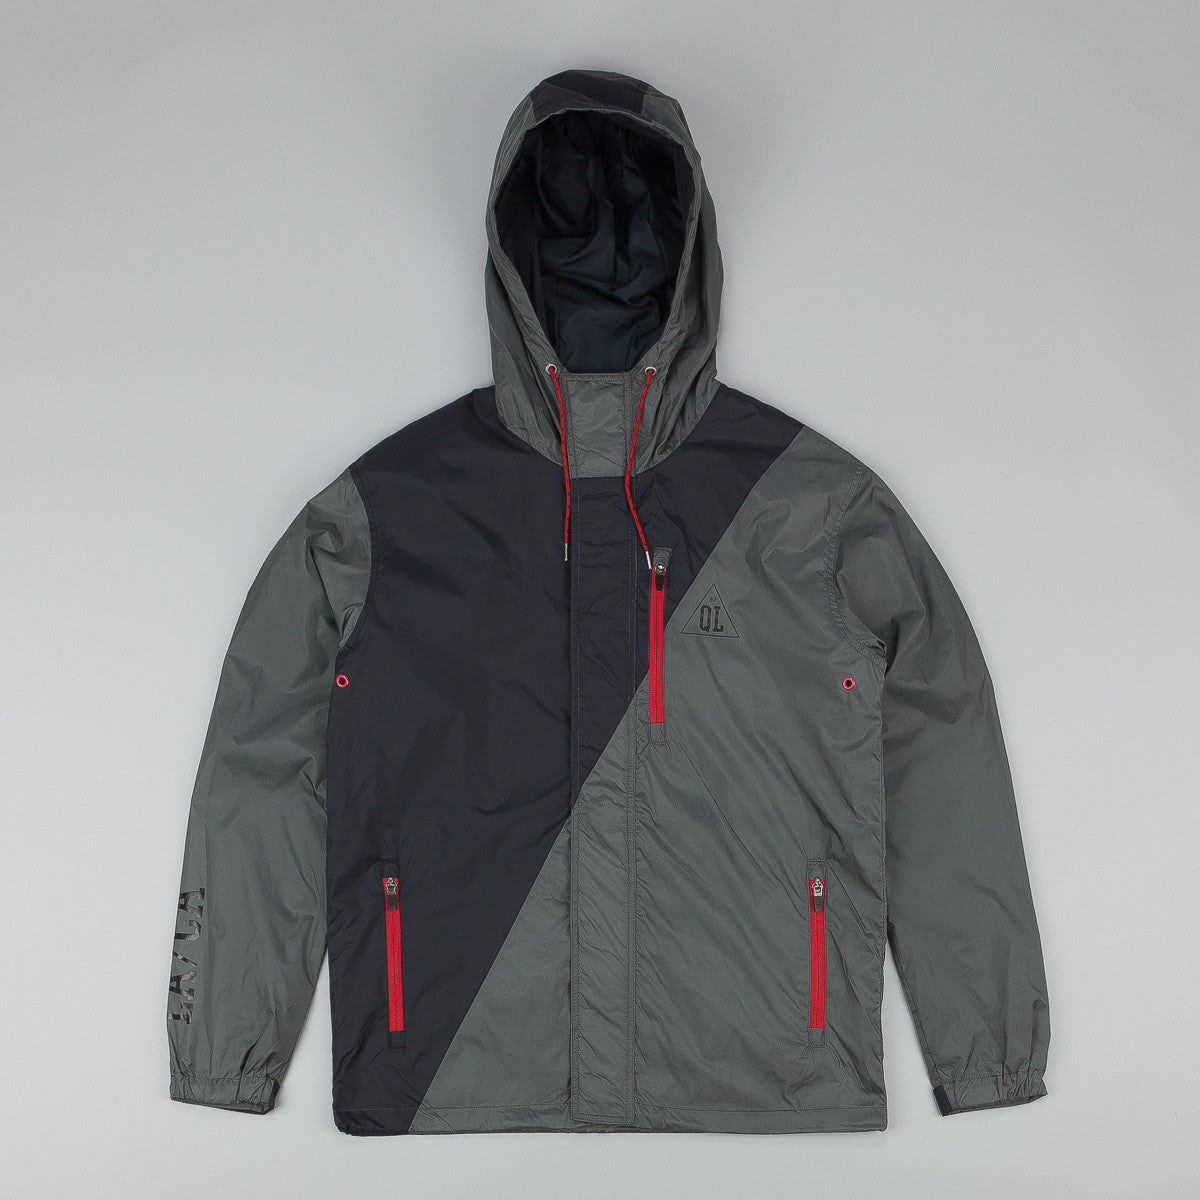 The Quiet Life Trail Windbreaker Jacket